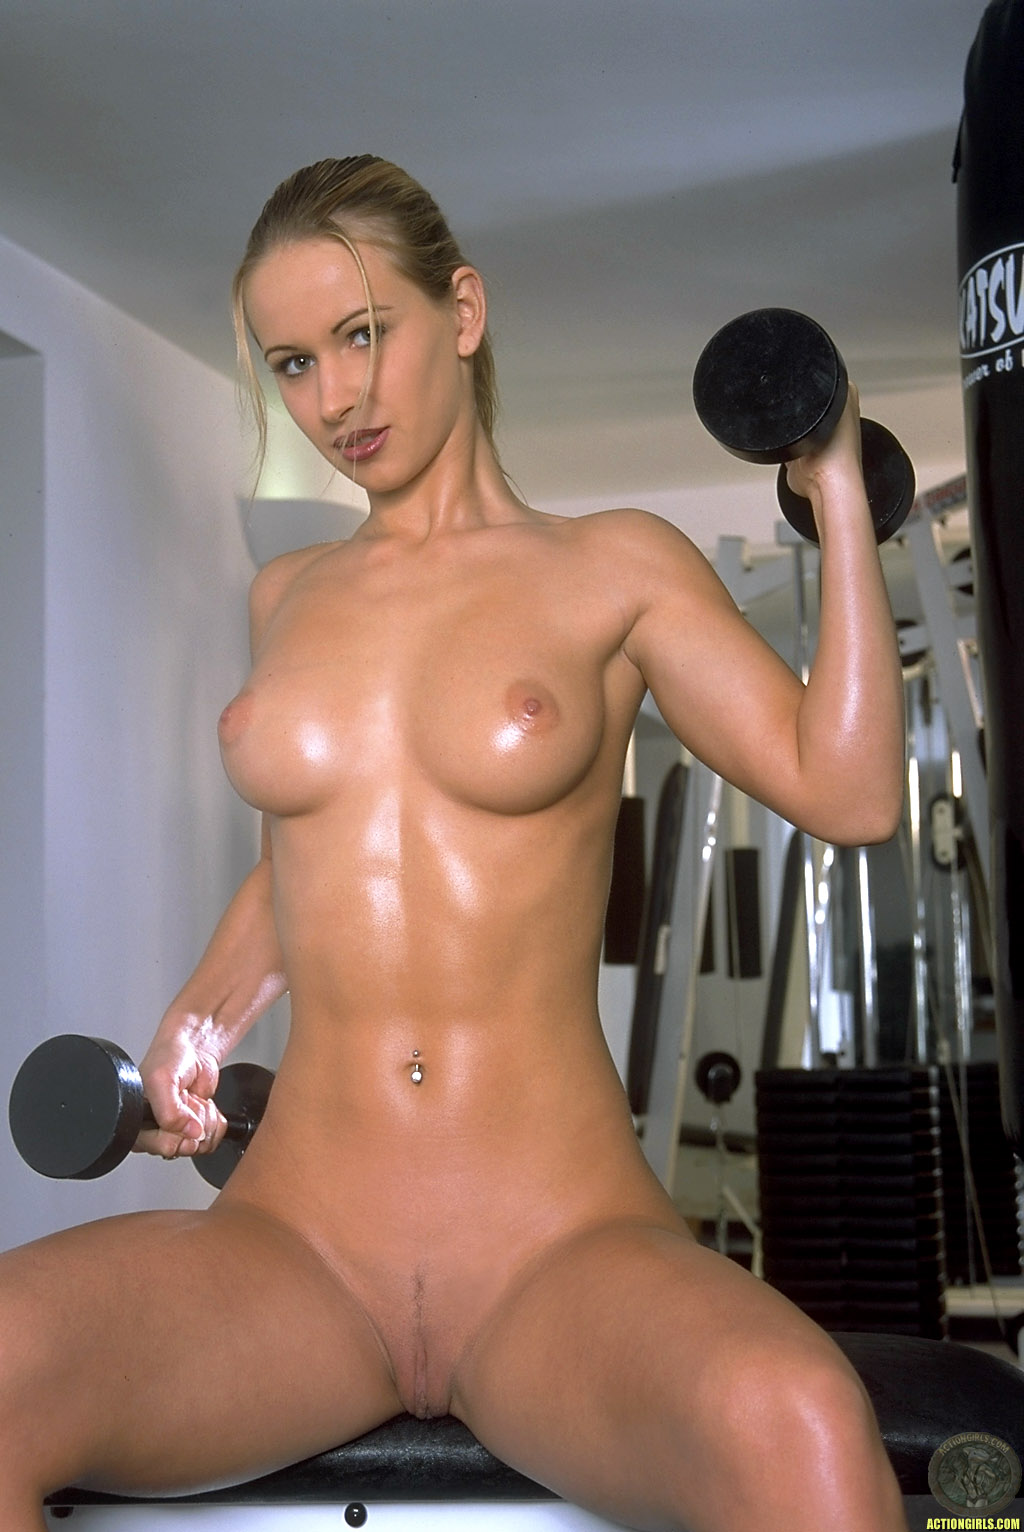 Hot fitness girls nude workout video